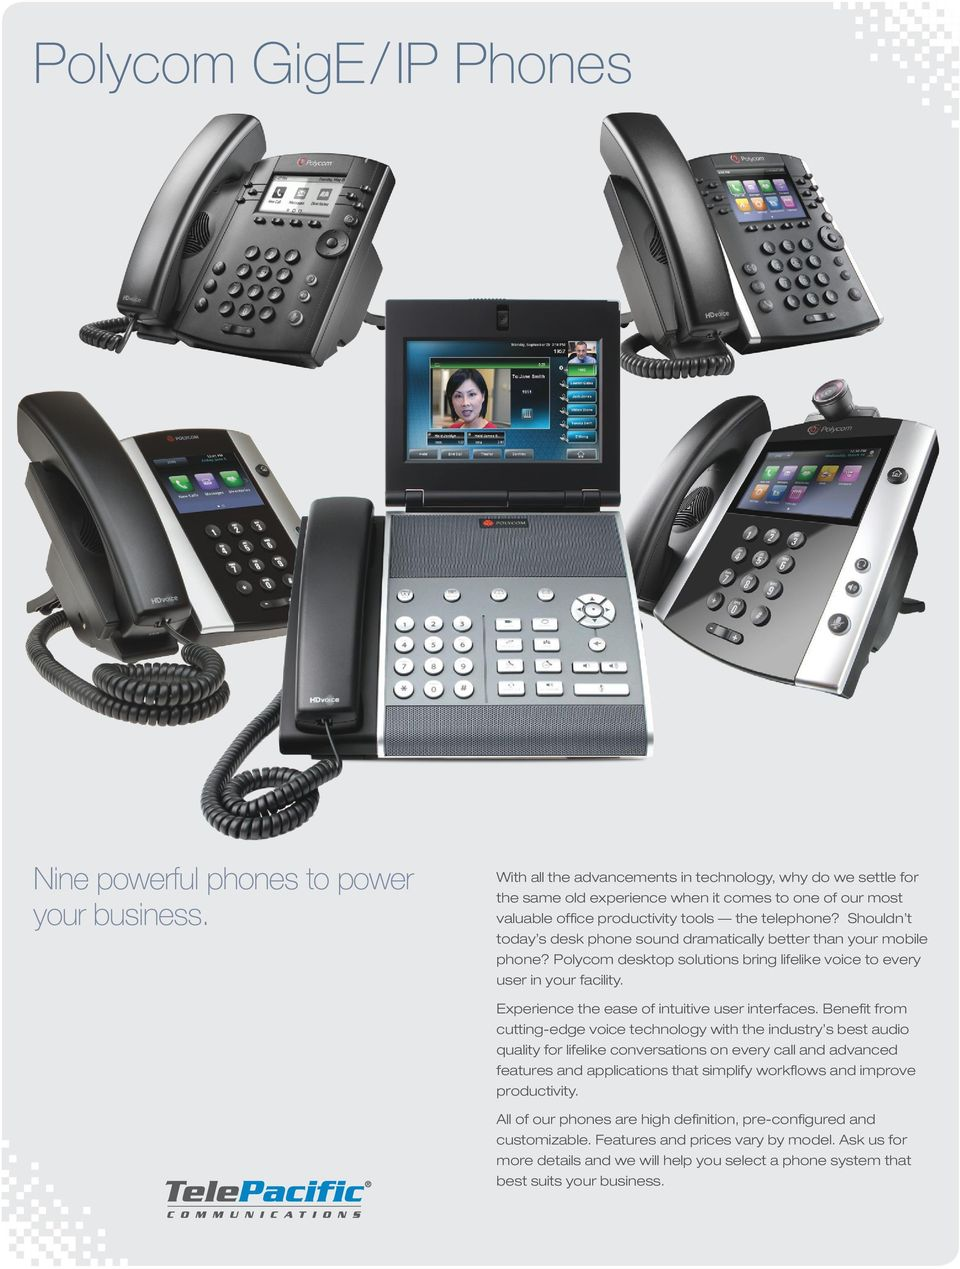 Shouldn t today s desk phone sound dramatically better than your mobile phone? Polycom desktop solutions bring lifelike voice to every user in your facility.